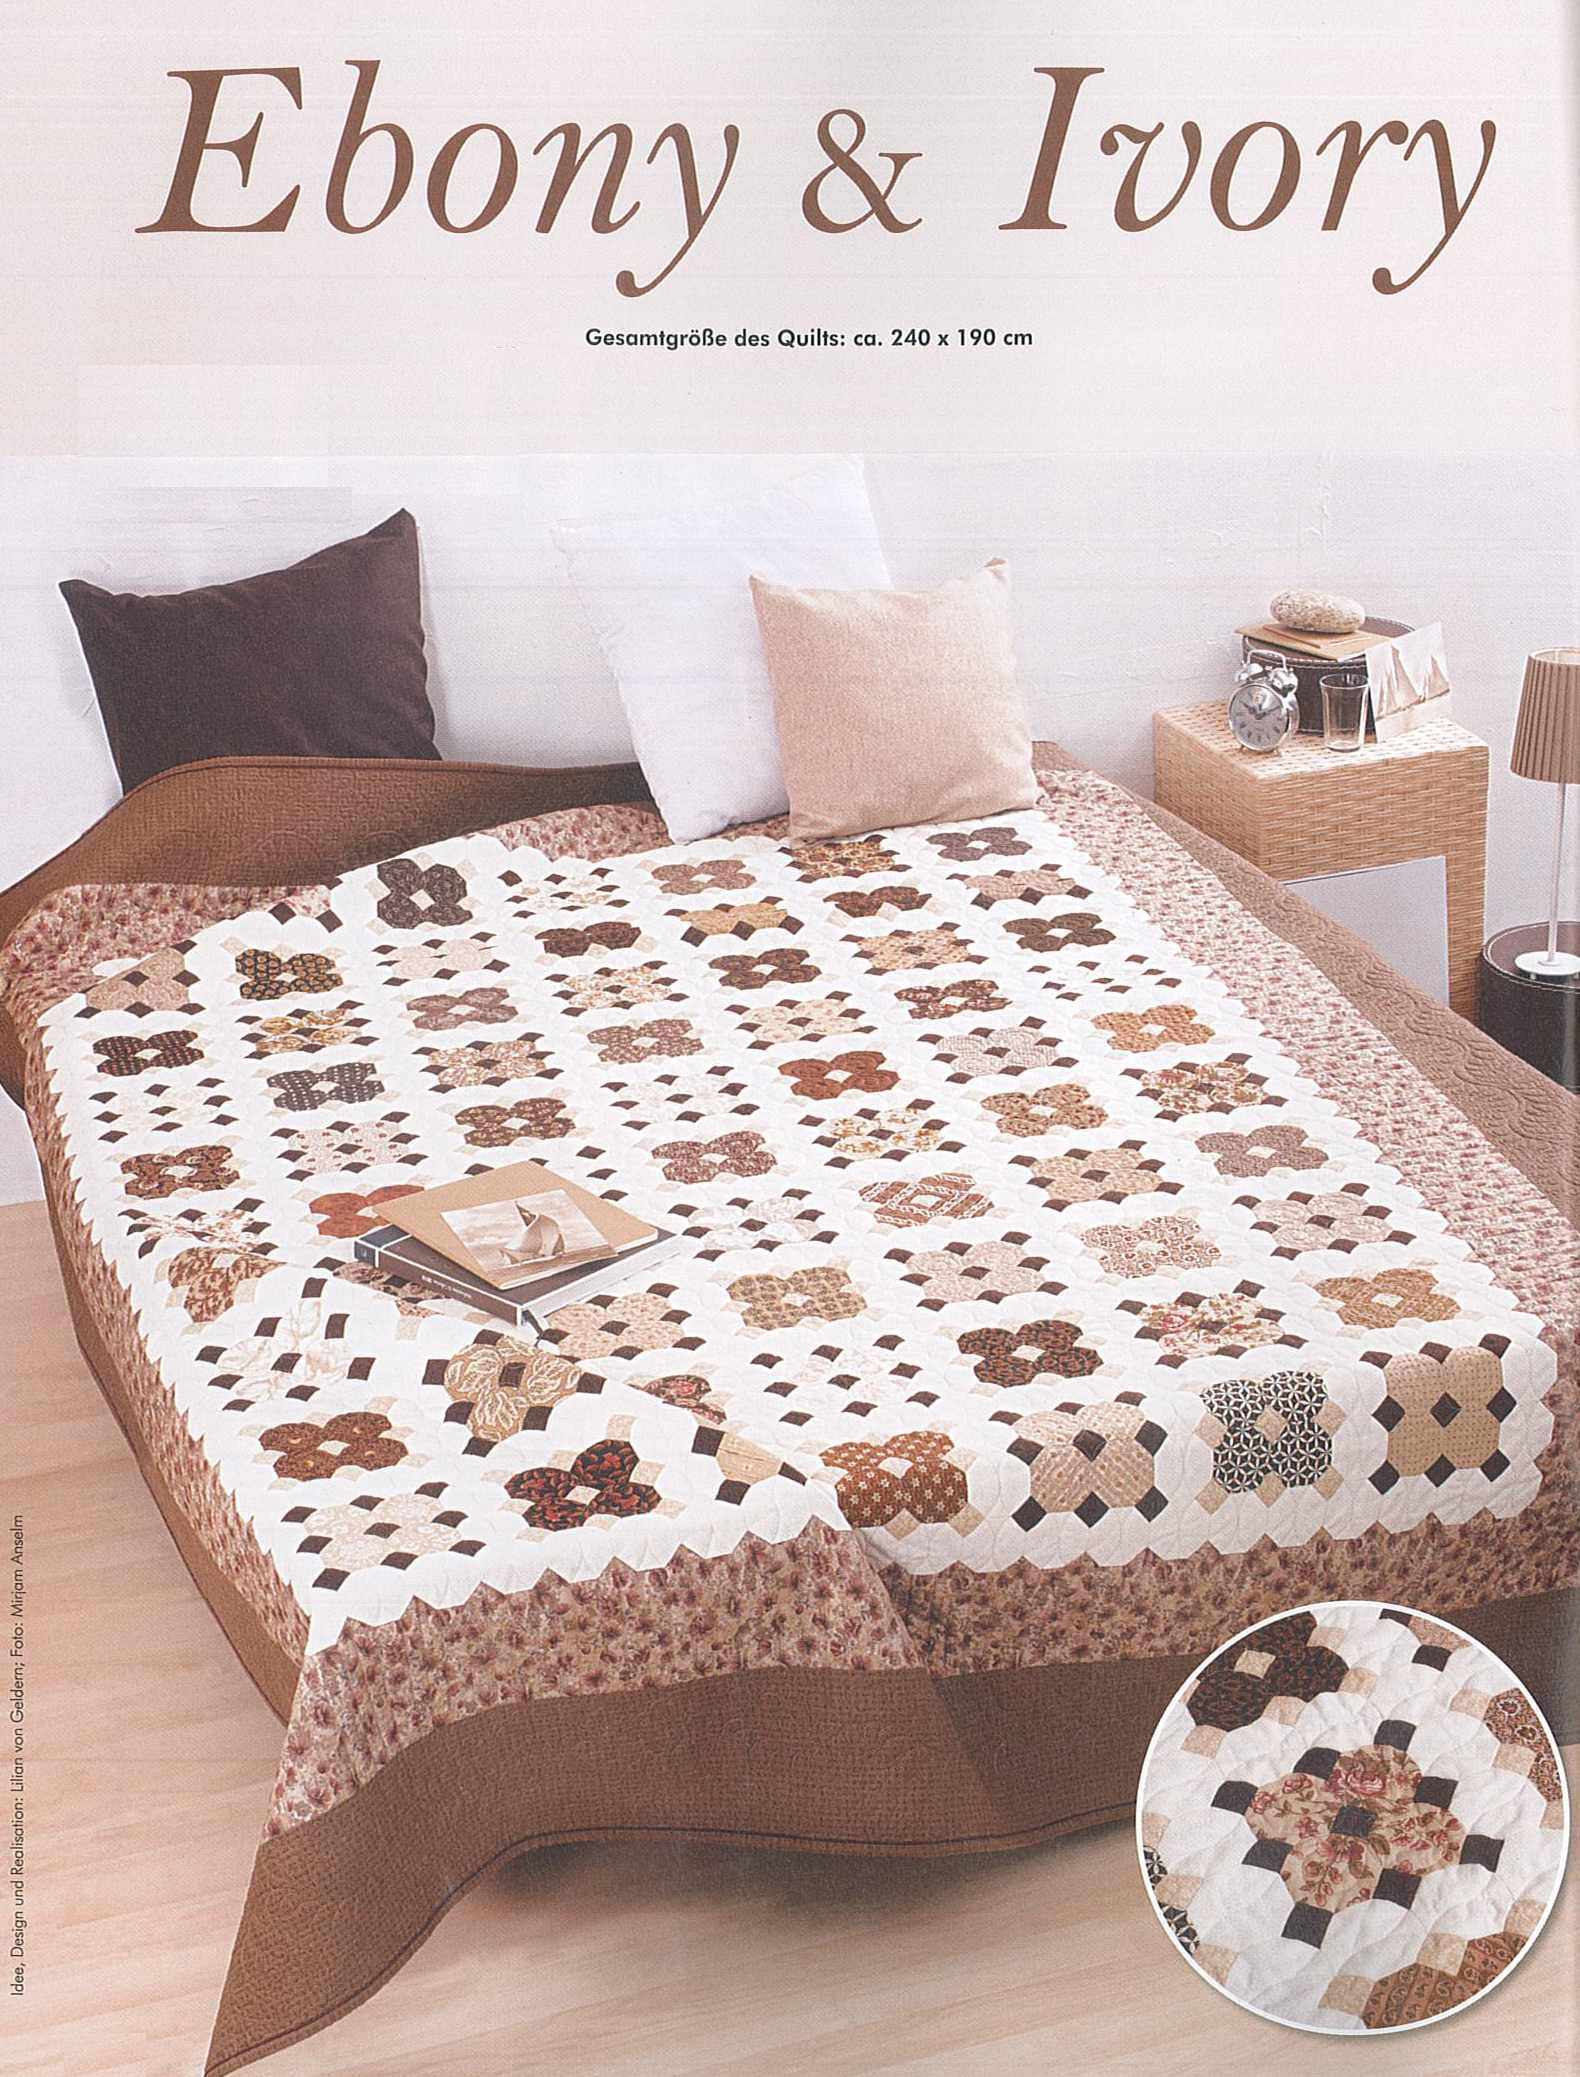 Ebony and Ivory, Patchwork Magazin 02-2015, Best of Patchwork 06